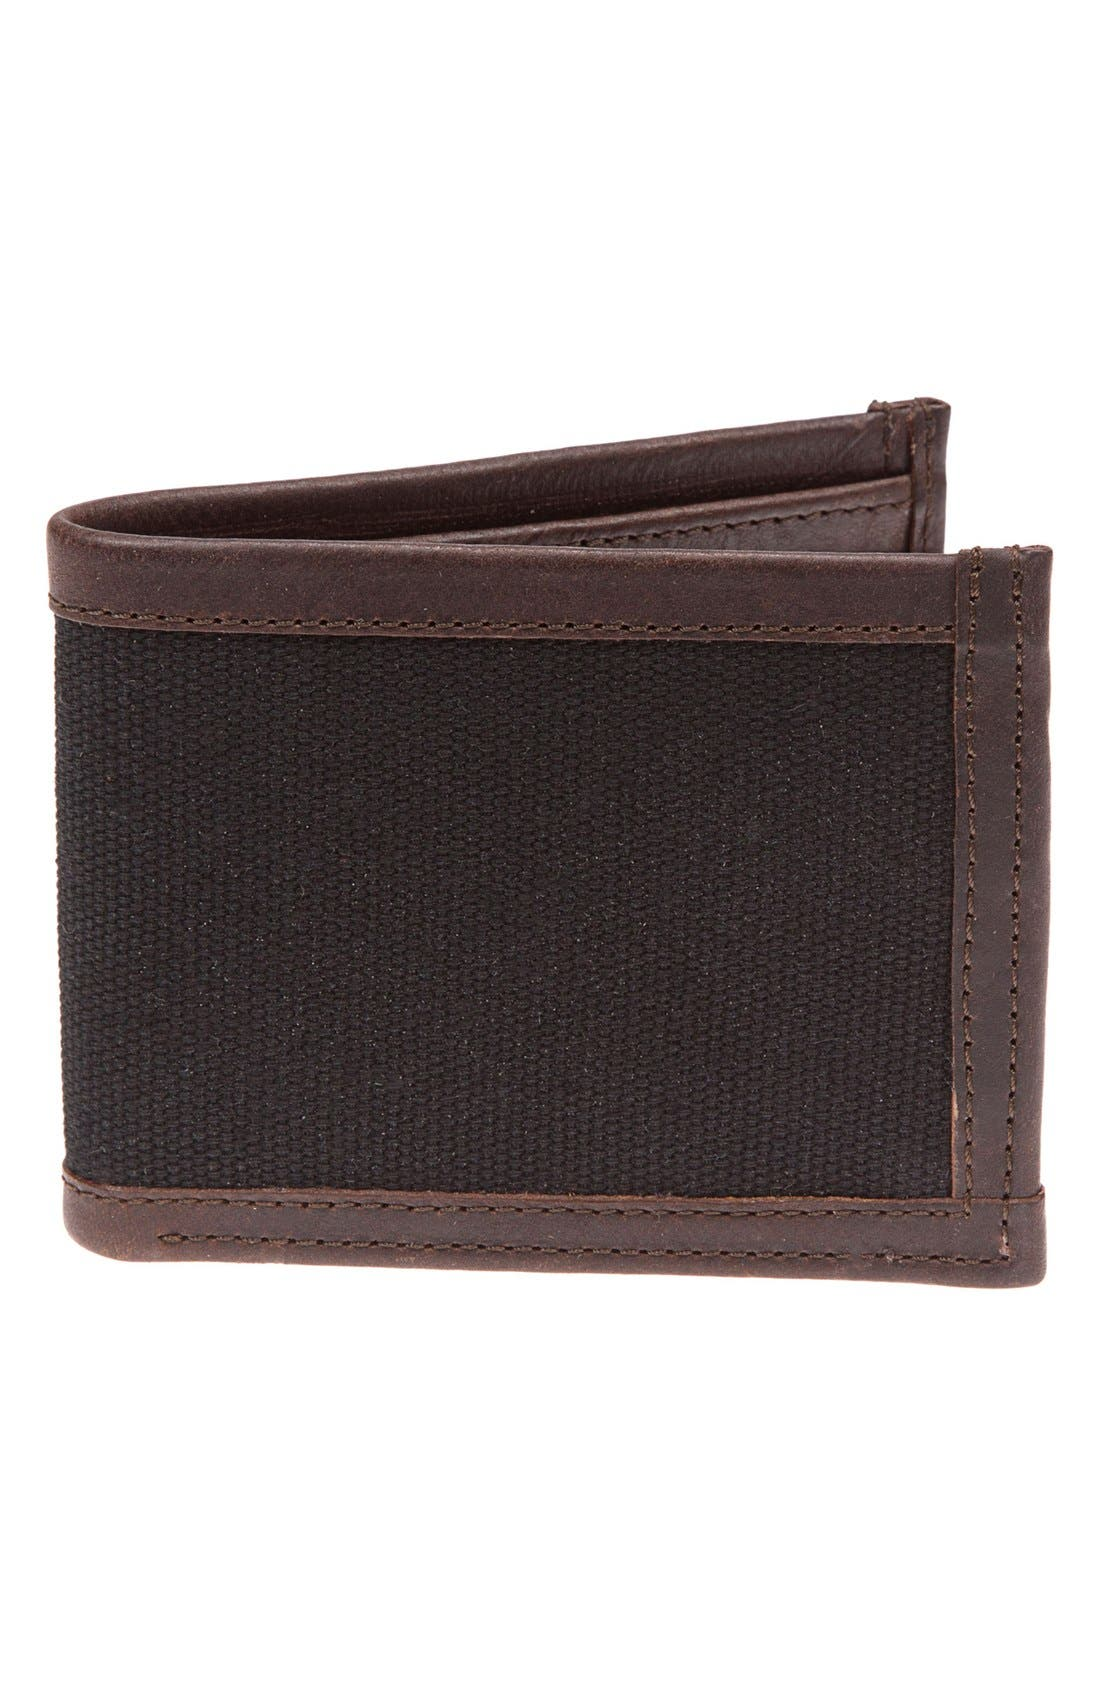 Main Image - Will Leather Goods 'Ethan' Wallet